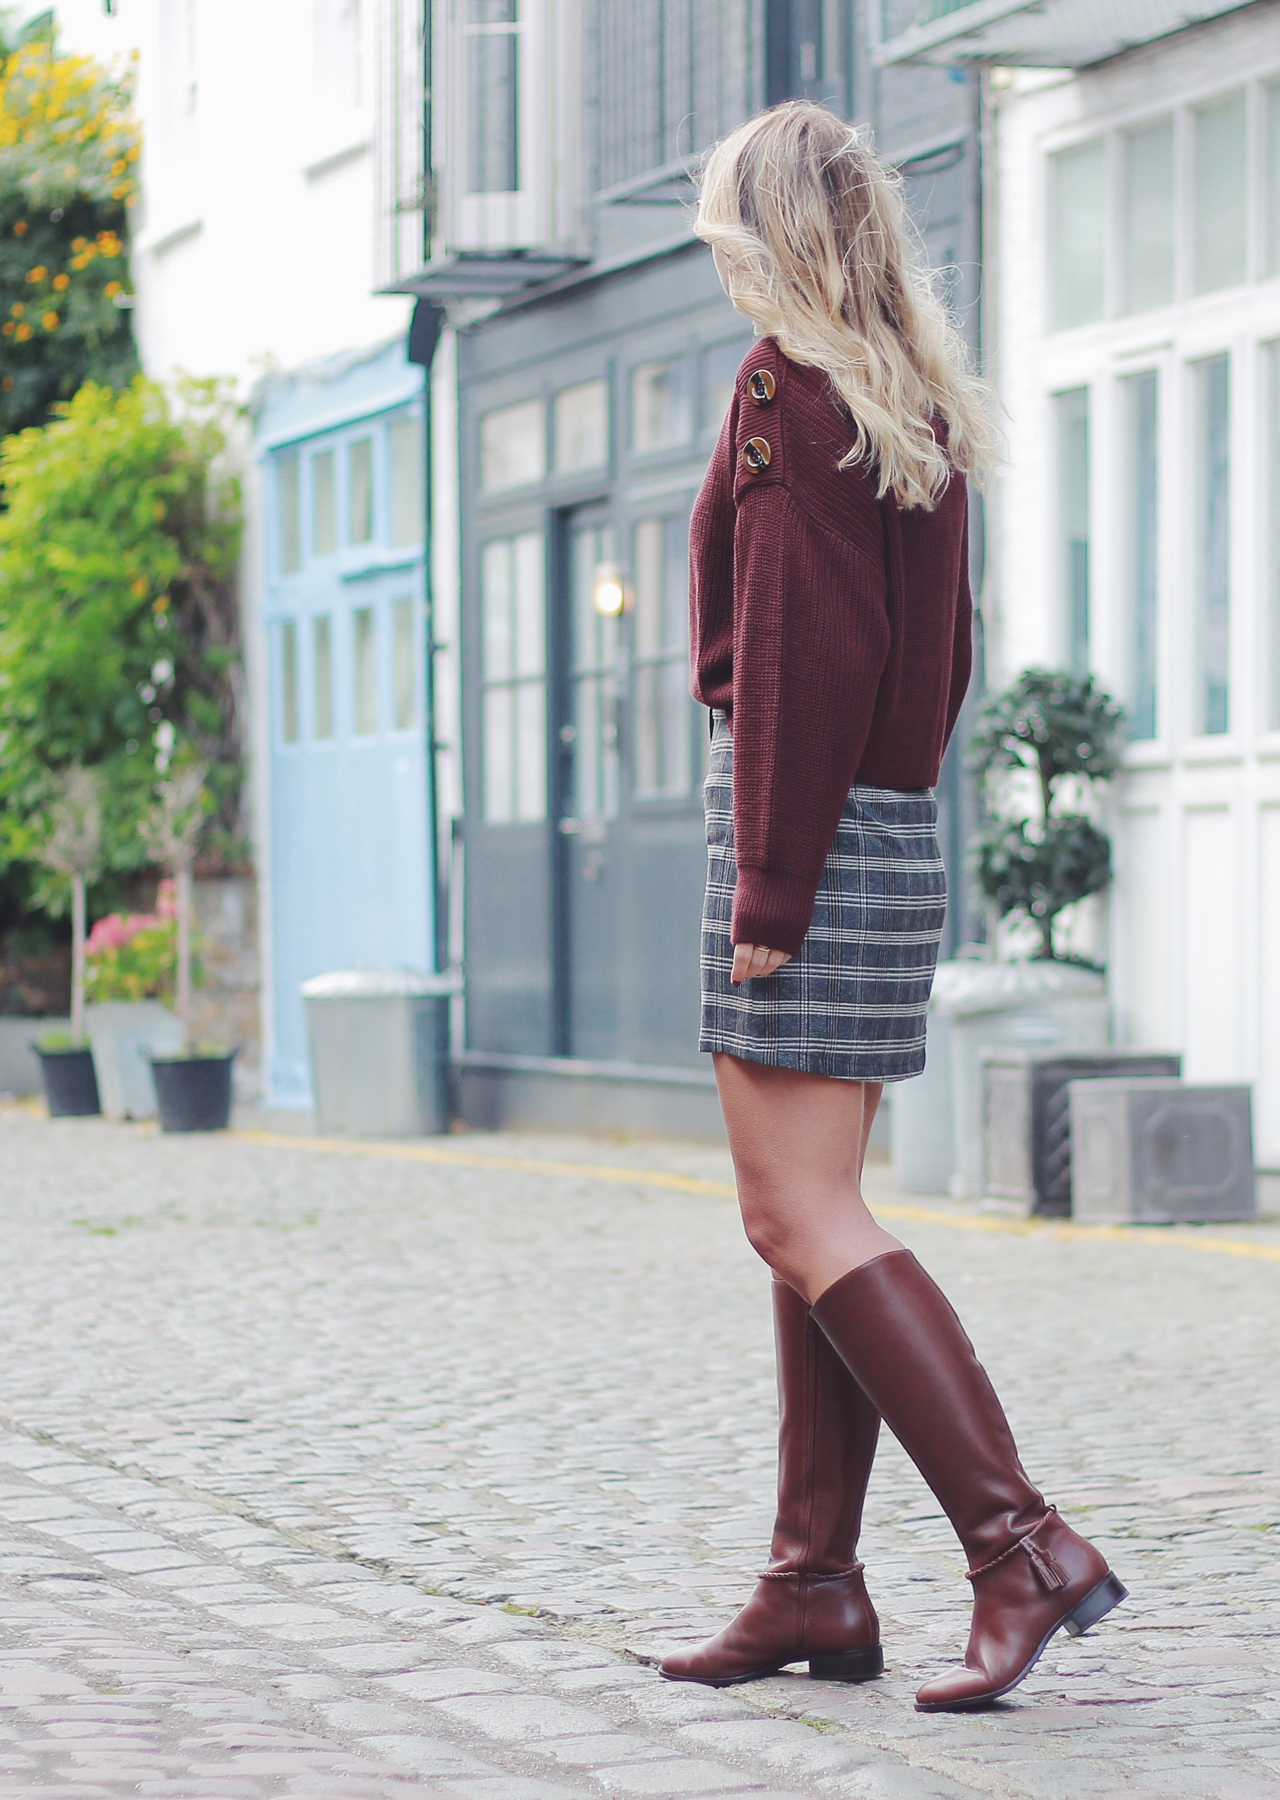 The Steele Maiden: Slouchy Button Shoulder Sweater and Plaid Mini Skirt